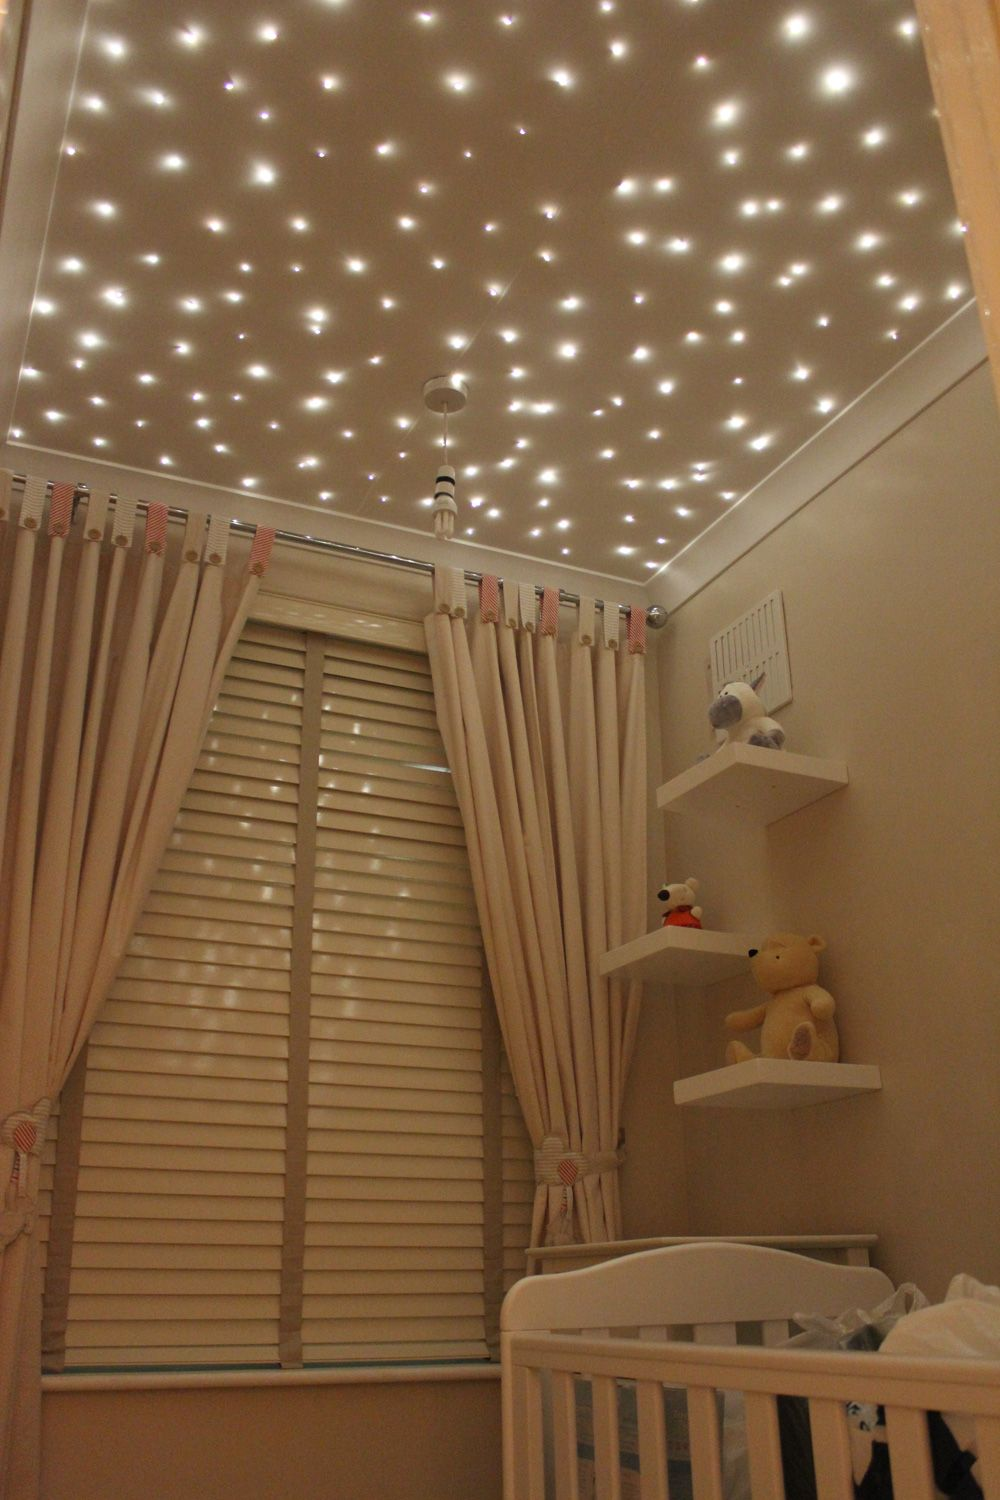 33 Ways to Light Up Your Life with Gorgeous String Lights Decorating     Stars in the Nursery